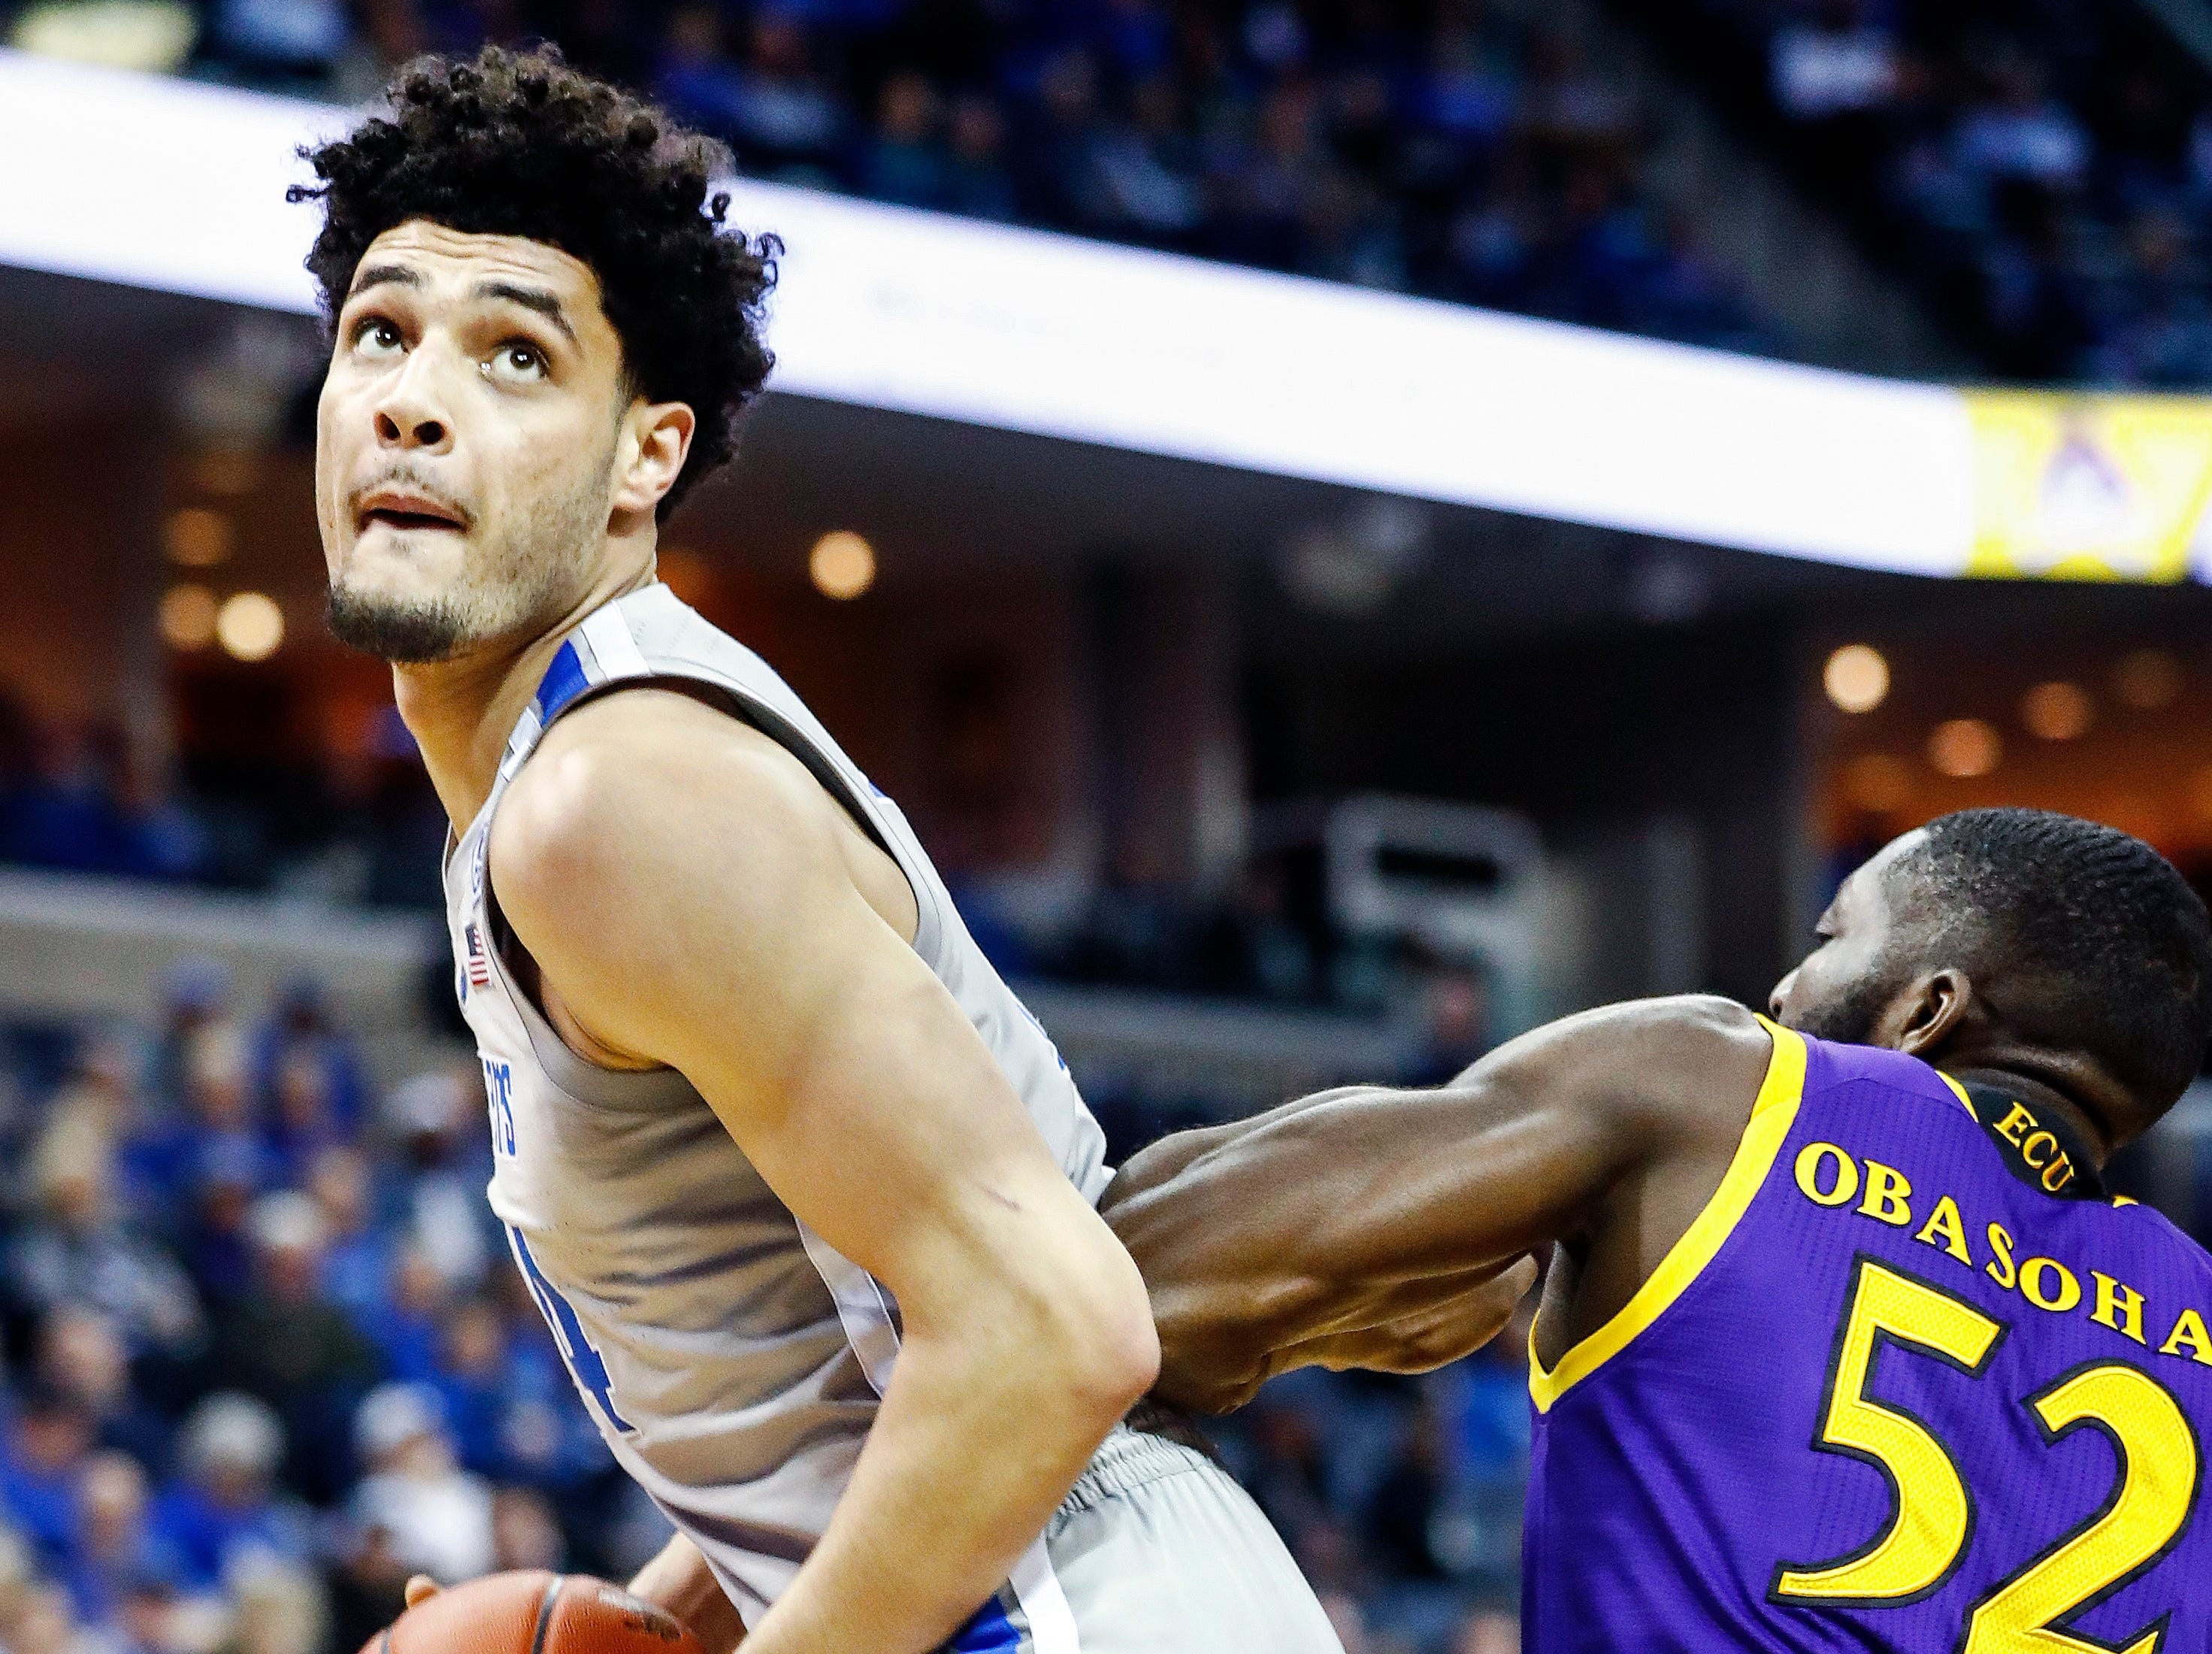 Memphis forward Isaiah Maurice (left) drives the lane against ECU defender Justice Obasohan (right) during action at the FedExForum, Thursday, January 10, 2019.